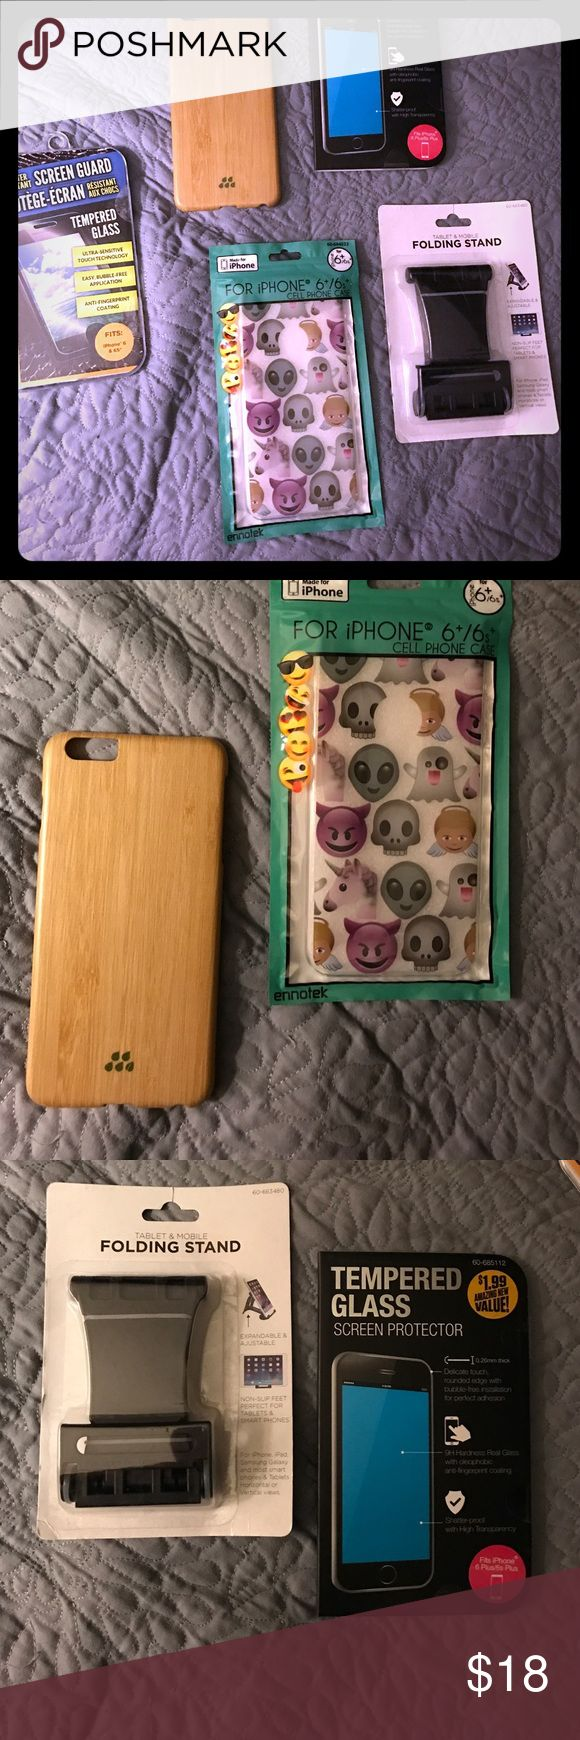 IPhone 6+ lot. 2 cases, 1 screen protector&1 stand Lot of IPhone 📱 6+ accessories. Just got the IPhone 6+ in May, so the Bamboo case is in good shape and saved its life a number of times. That case cost $45 alone. All other items are NWT. Extra screen protector. Stand. Acrylic emoji case. There is also another NWT protector for an iPhone 6&6s because I thought they were the same as 6+. Got the new iPhone 📱 7& none of these fit. Various Accessories Phone Cases